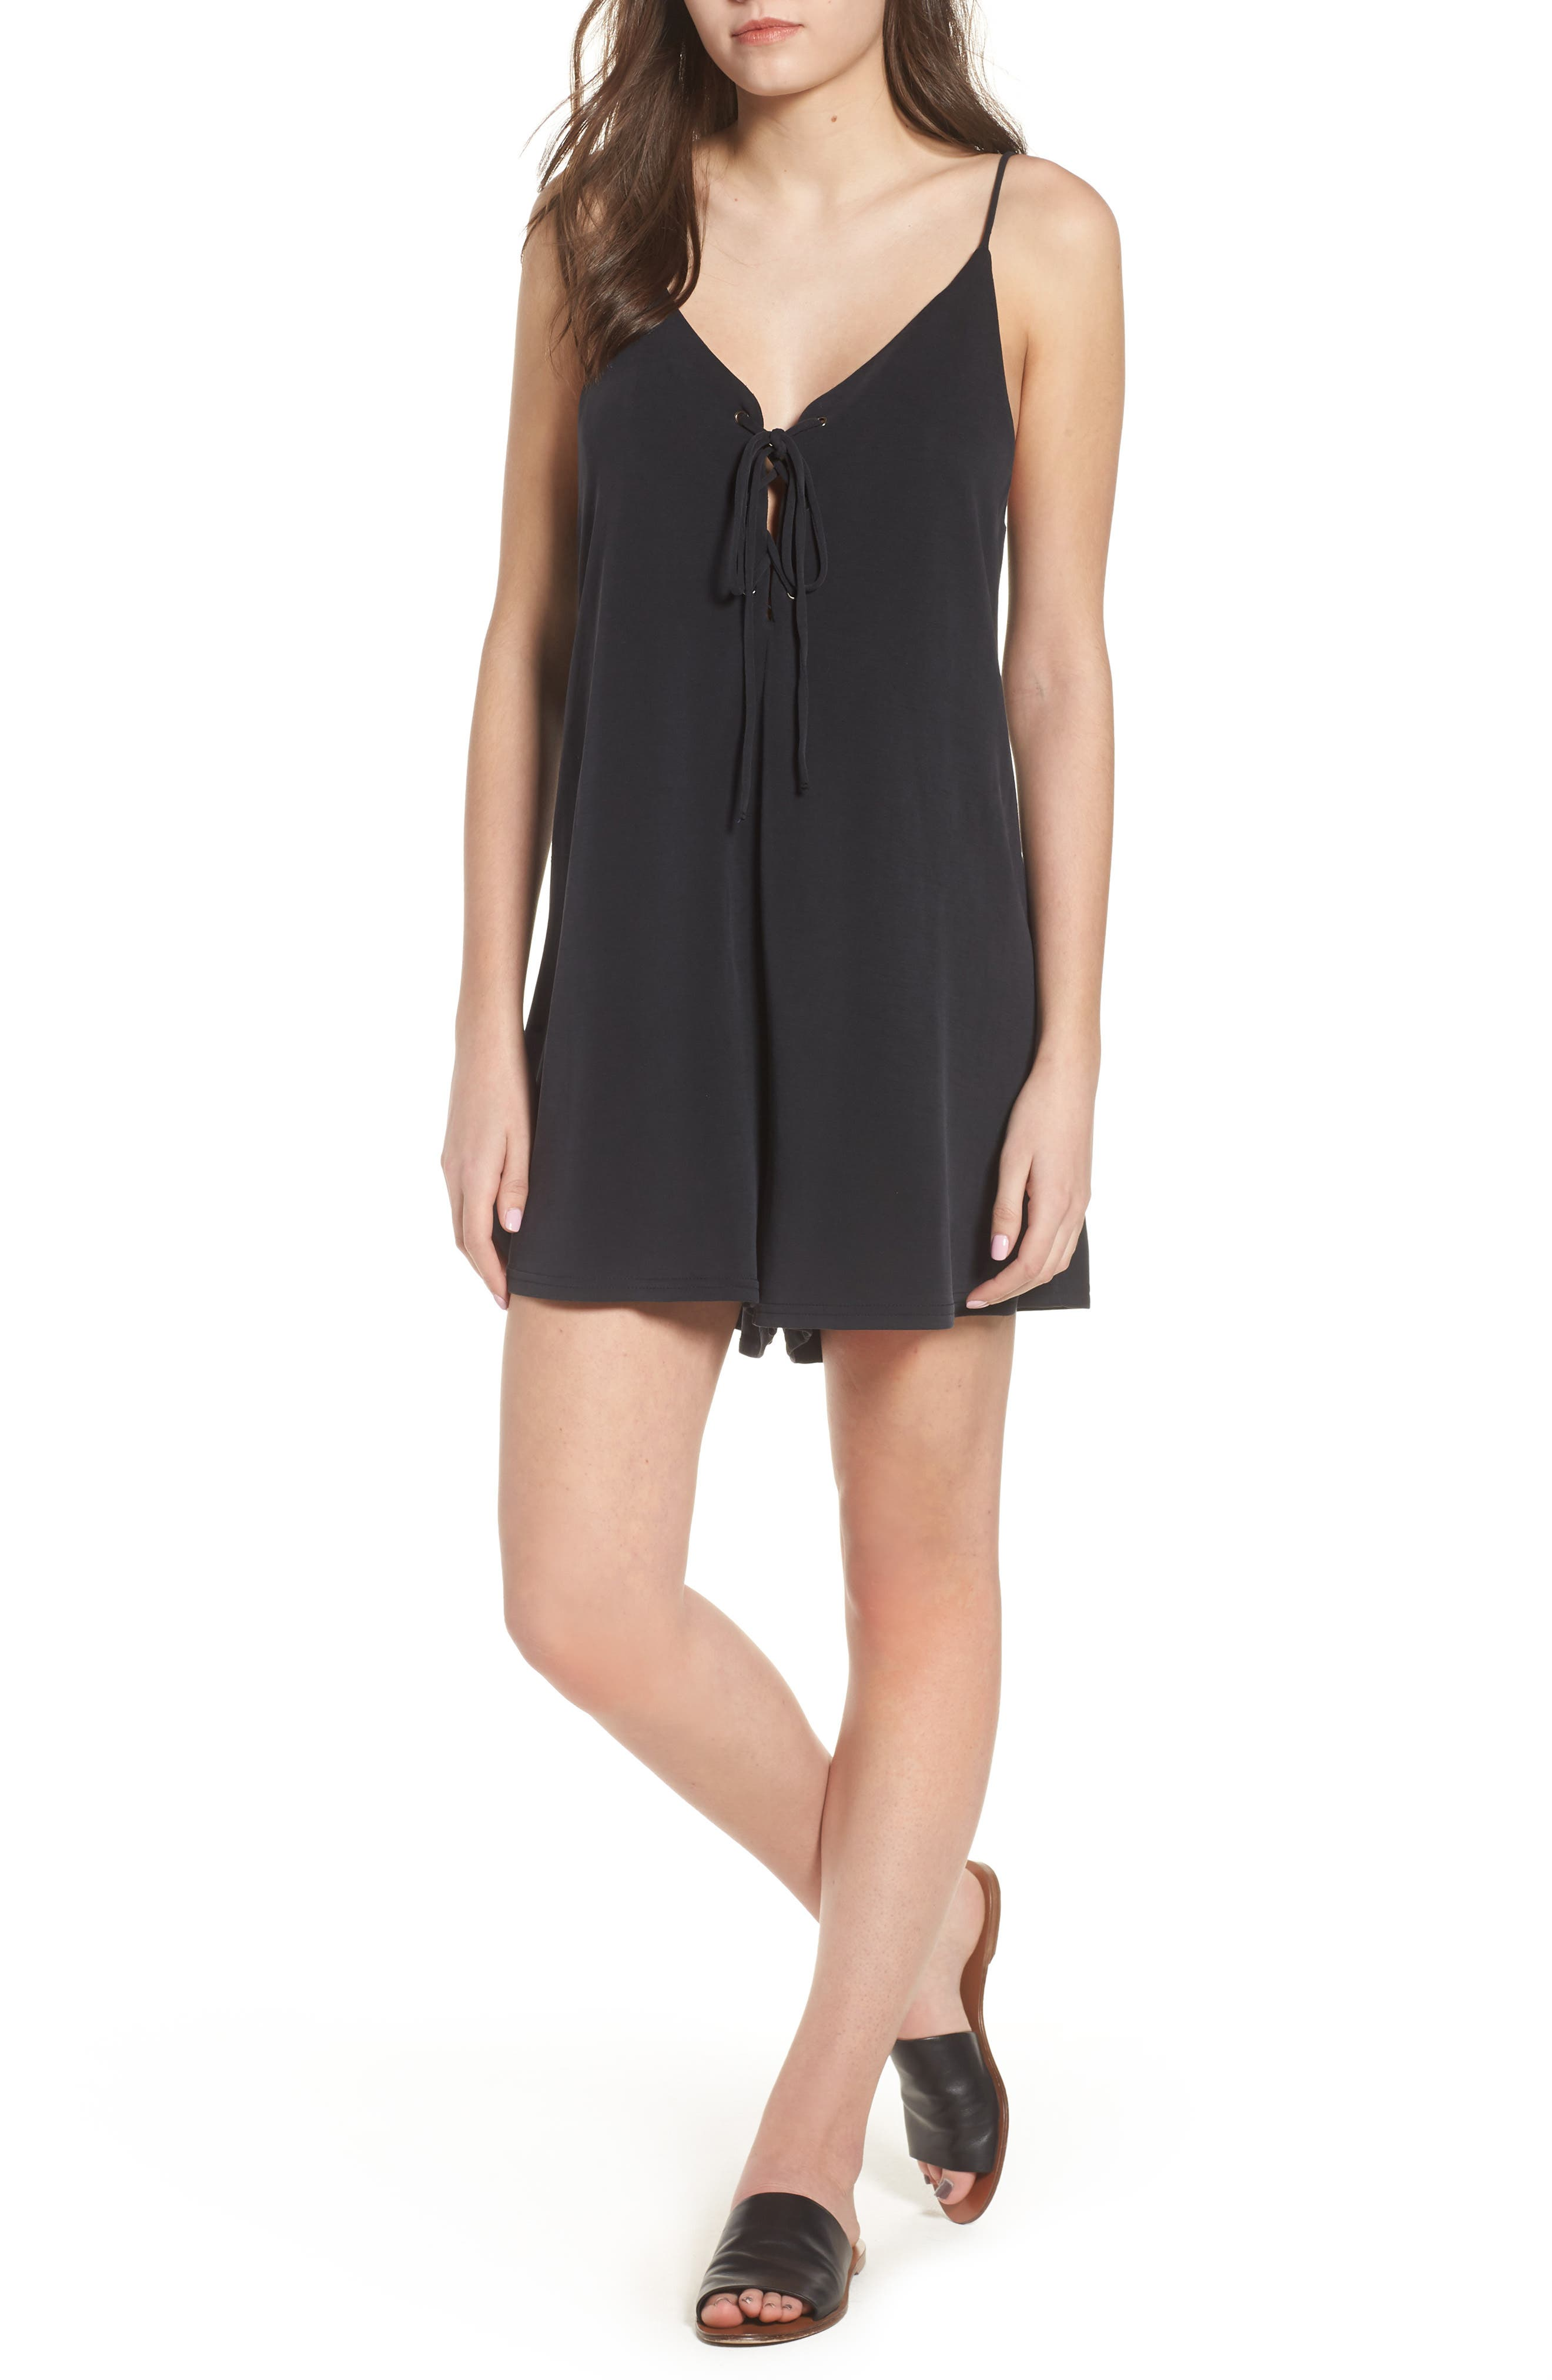 Lira Clothing Play for Keeps Lace-Up Romper